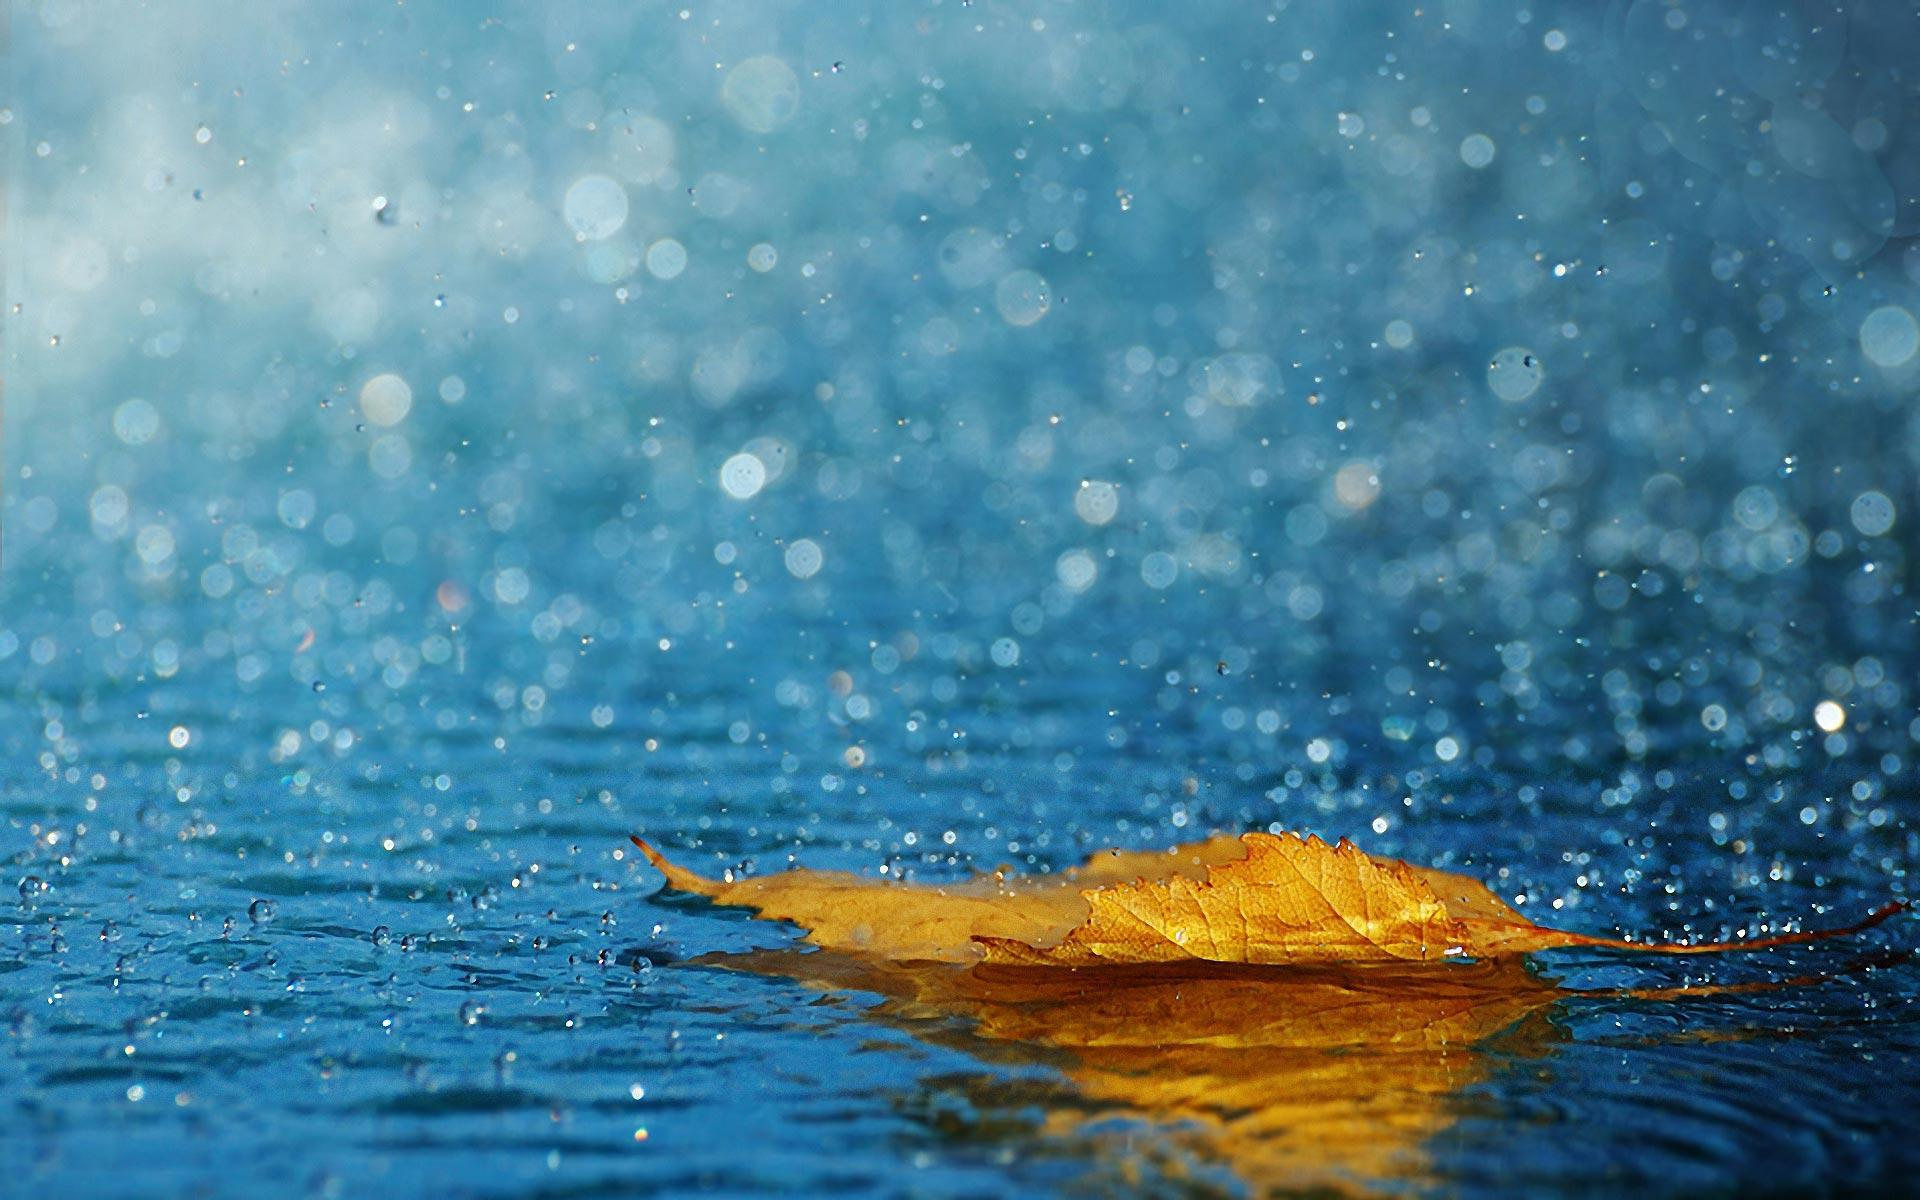 Rain Wallpaper HD Widescreen 4